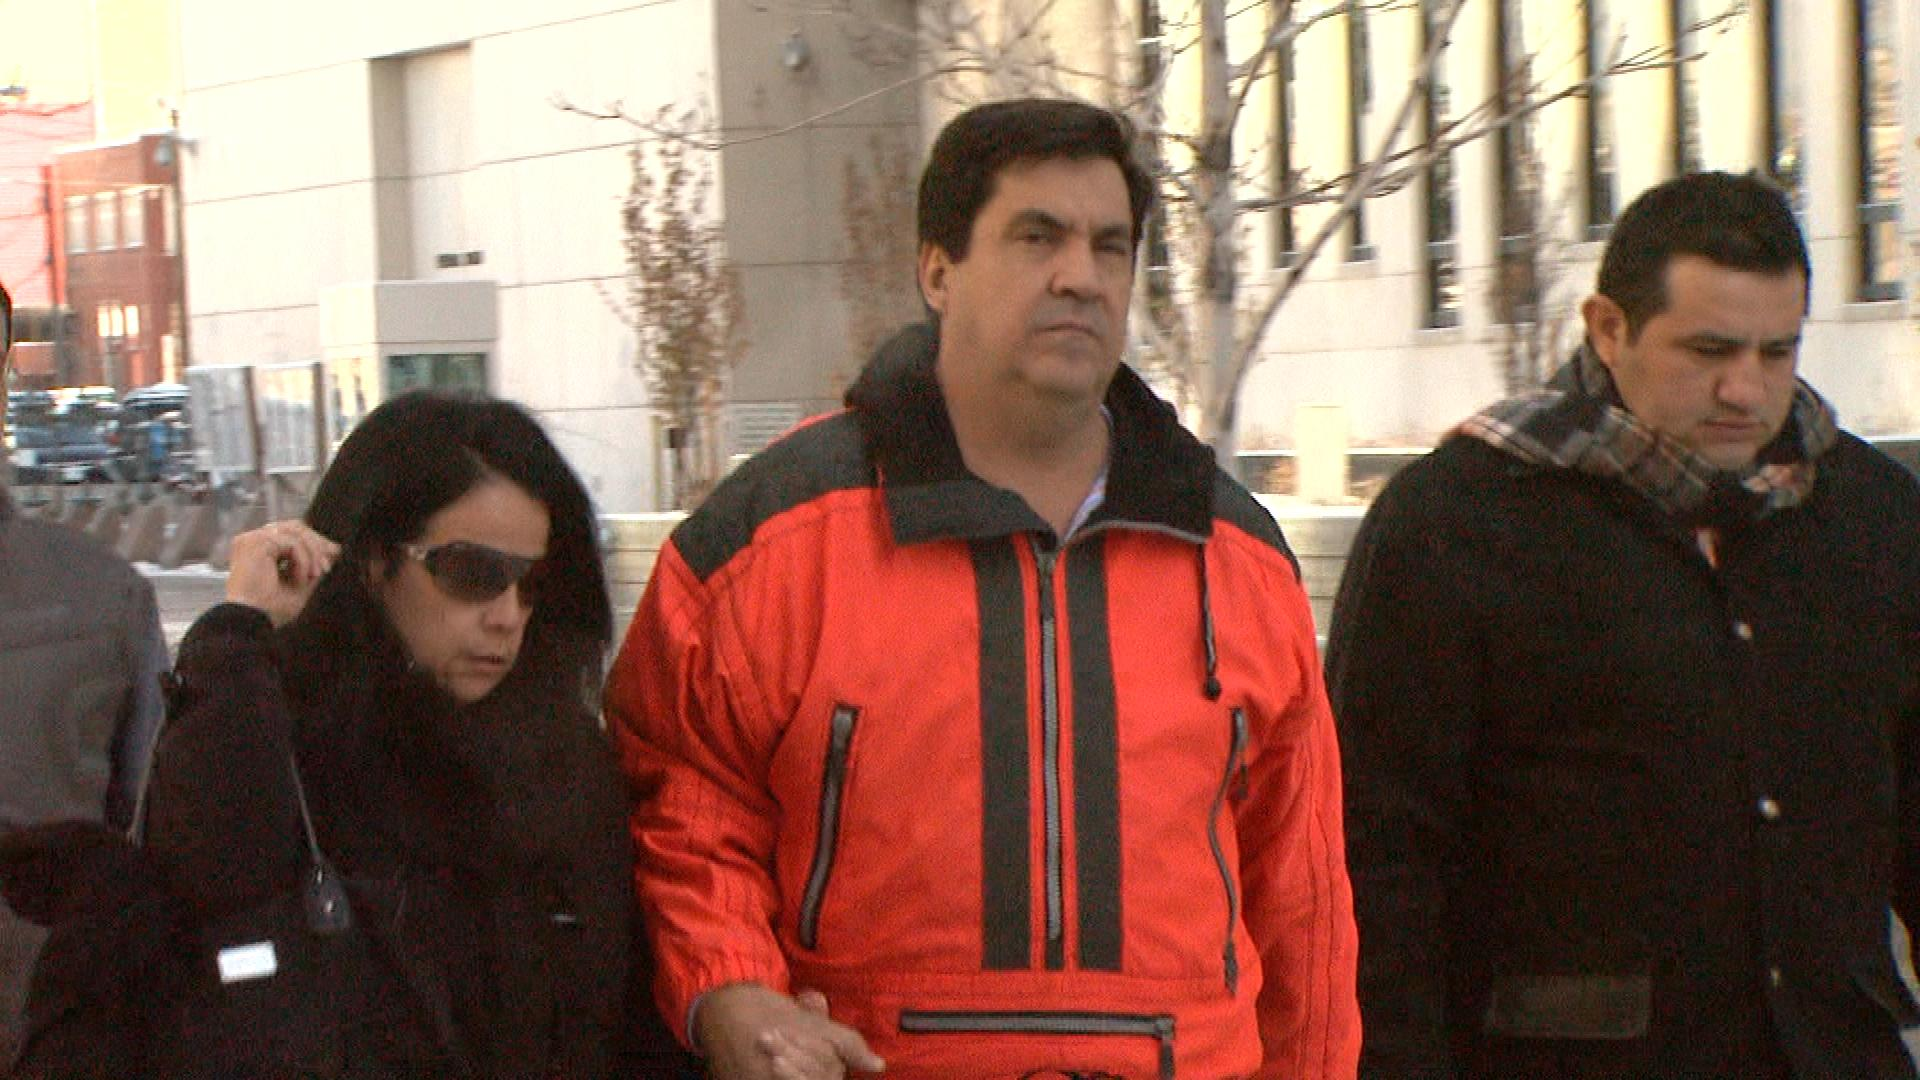 Hector Diaz leaving court on Dec. 6, 2013 (credit: CBS)